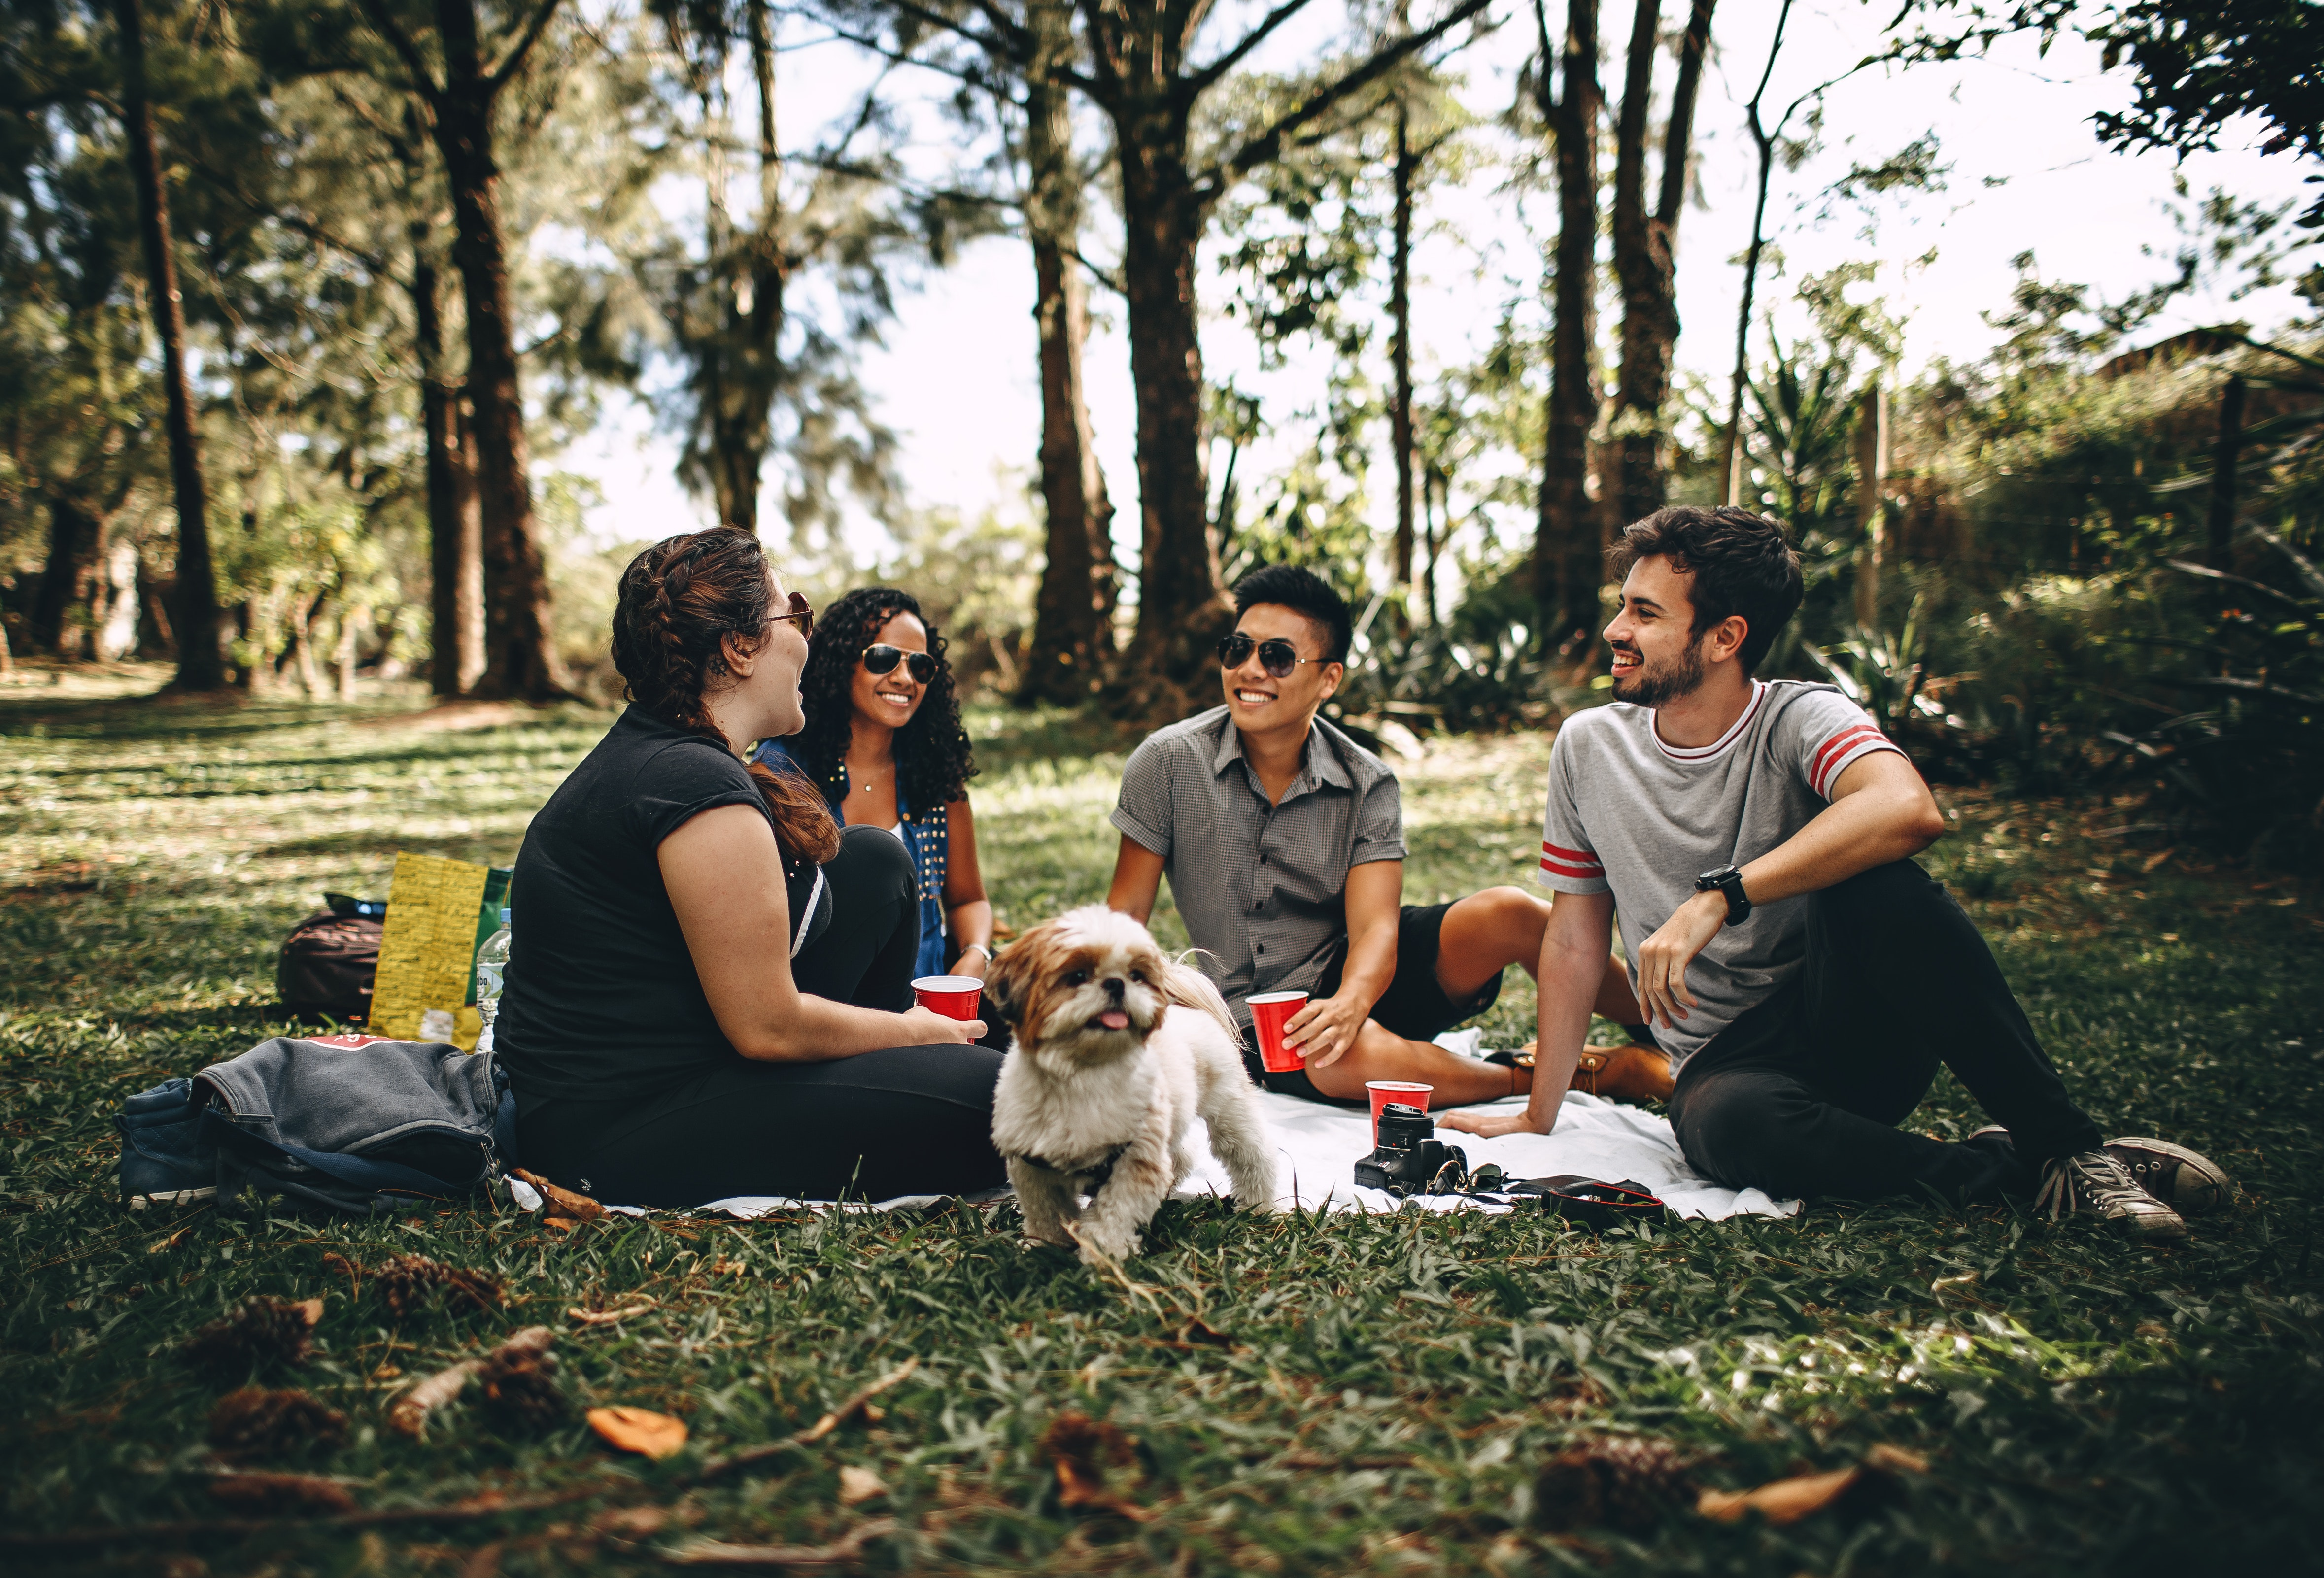 Group of People Sitting on White Mat on Grass Field, Chatting, Picnic, Woods, Women, HQ Photo